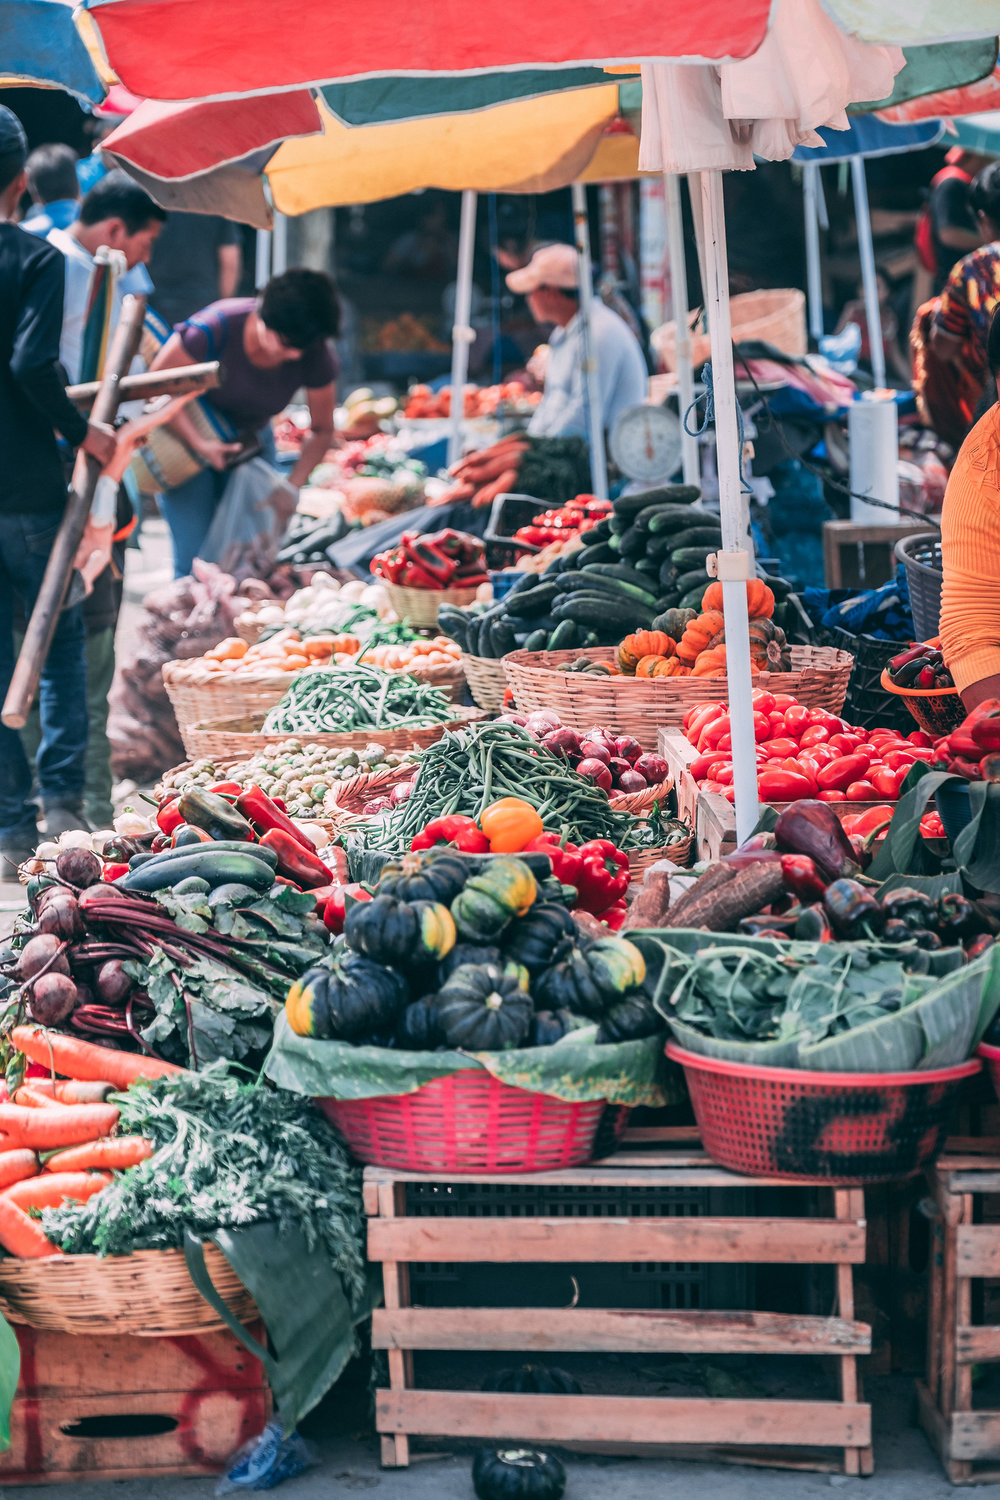 Fresh produce at the outdoor market in Antigua, Guatemala.